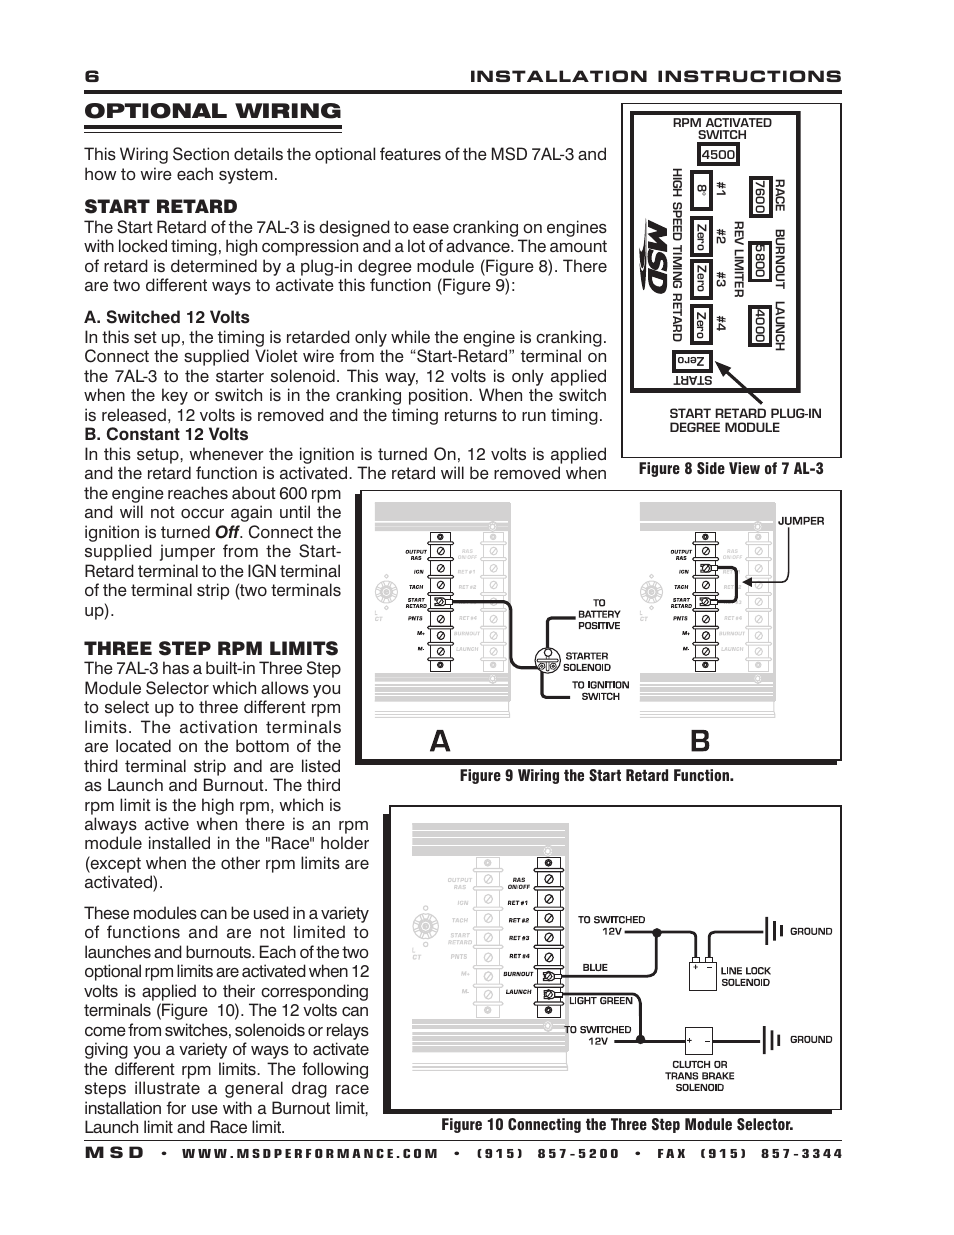 msd 2 step wiring diagram msd image wiring diagram msd two step wiring diagram msd auto wiring diagram schematic on msd 2 step wiring diagram